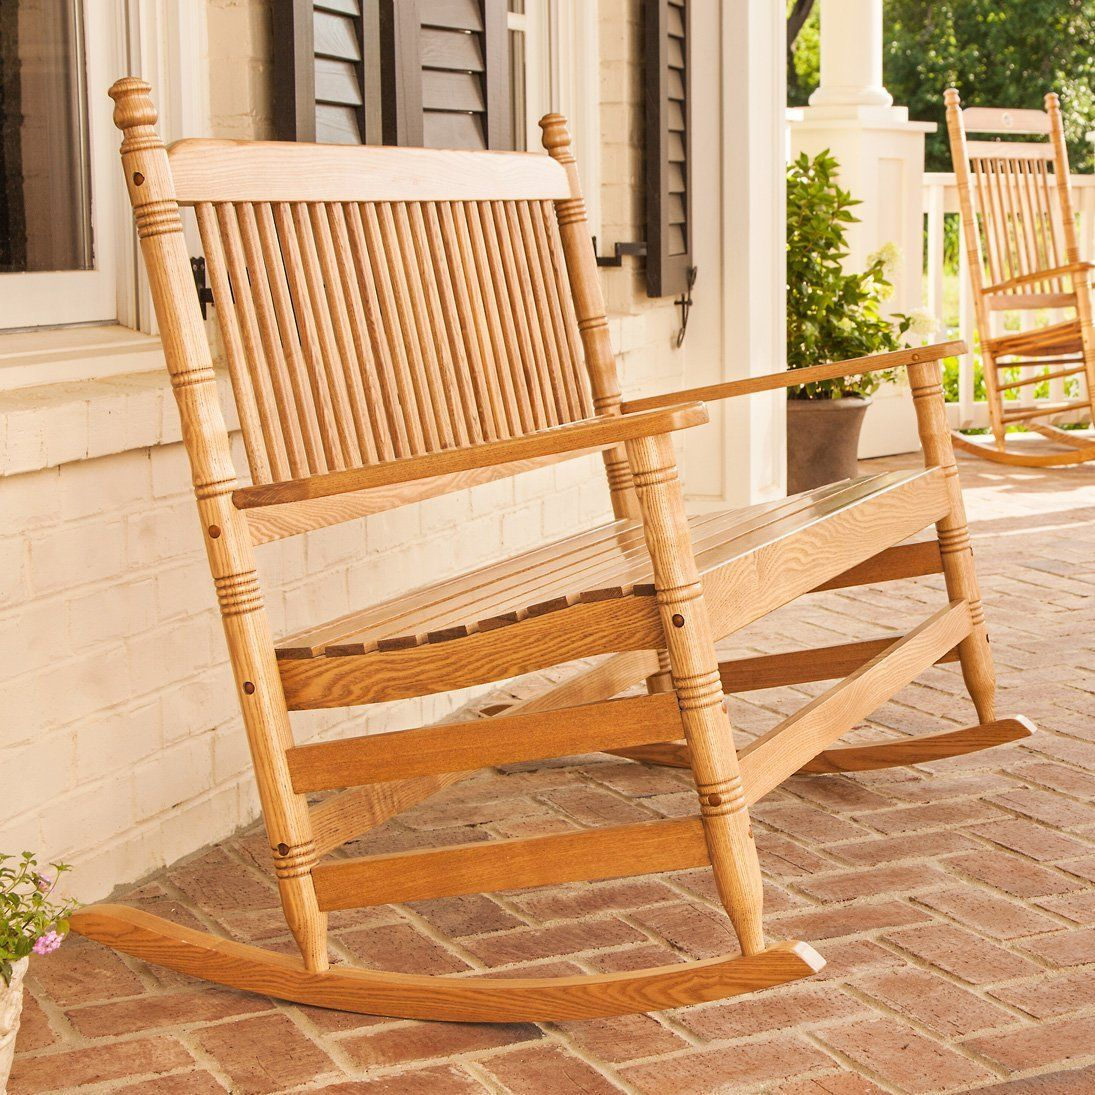 Old Wooden Barrel Chairs Oak High Back Dining 4 39 Double Rocking Chair From Cracker I Need